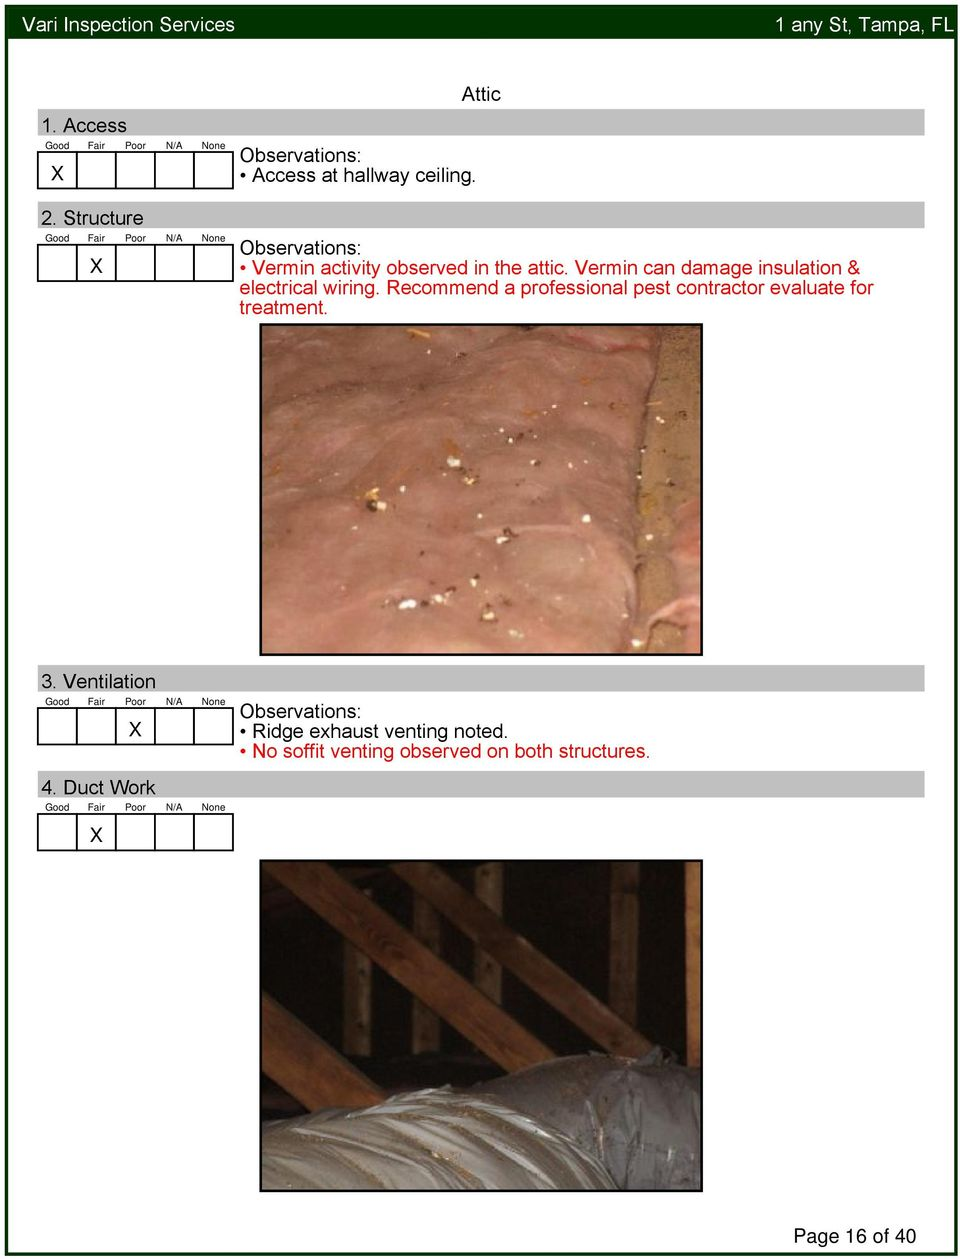 Vermin can damage insulation & electrical wiring.